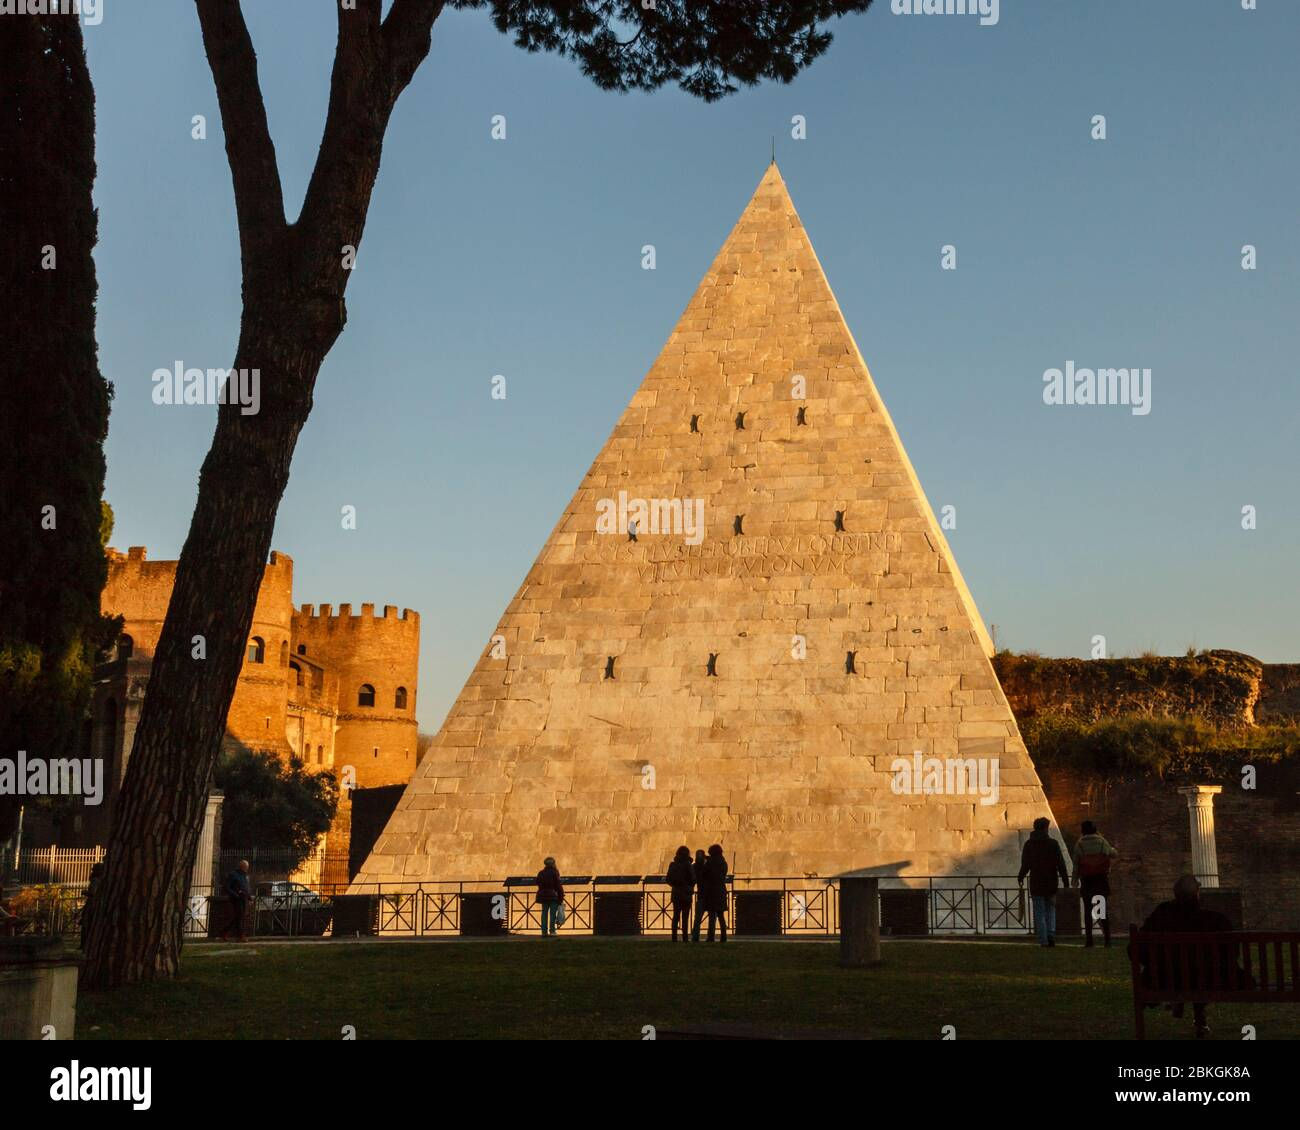 The Pyramid of Cestius forms part of the Aurelian Wall, seen from the  Non-Catholic Cemetery where Keats is buried in Rome, Italy Stock Photo